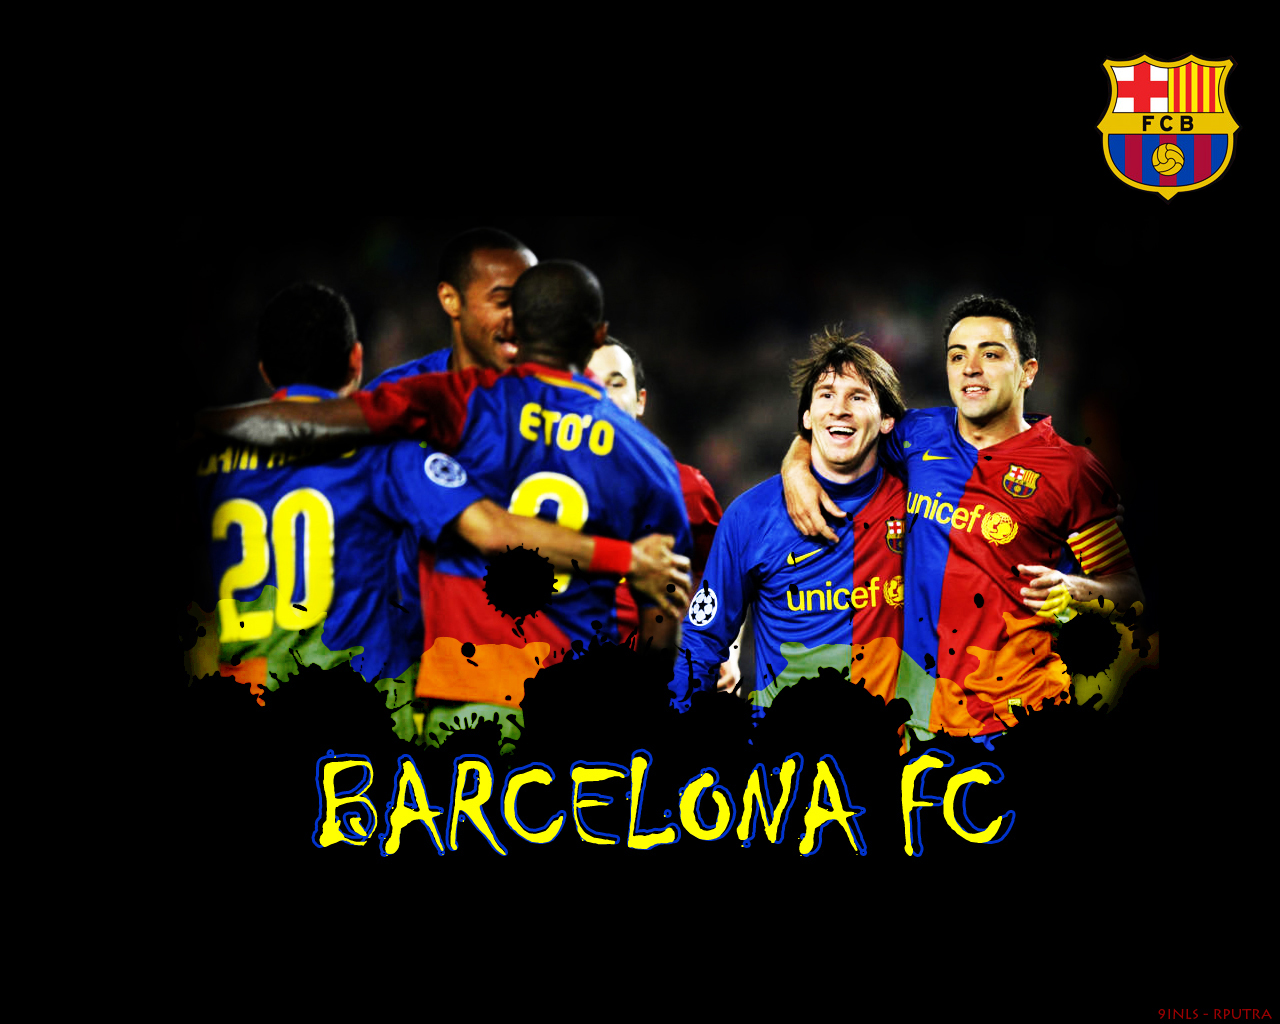 Barcelona wallpaper | Hinh anh dep bong da ve Barcelona wallpaper